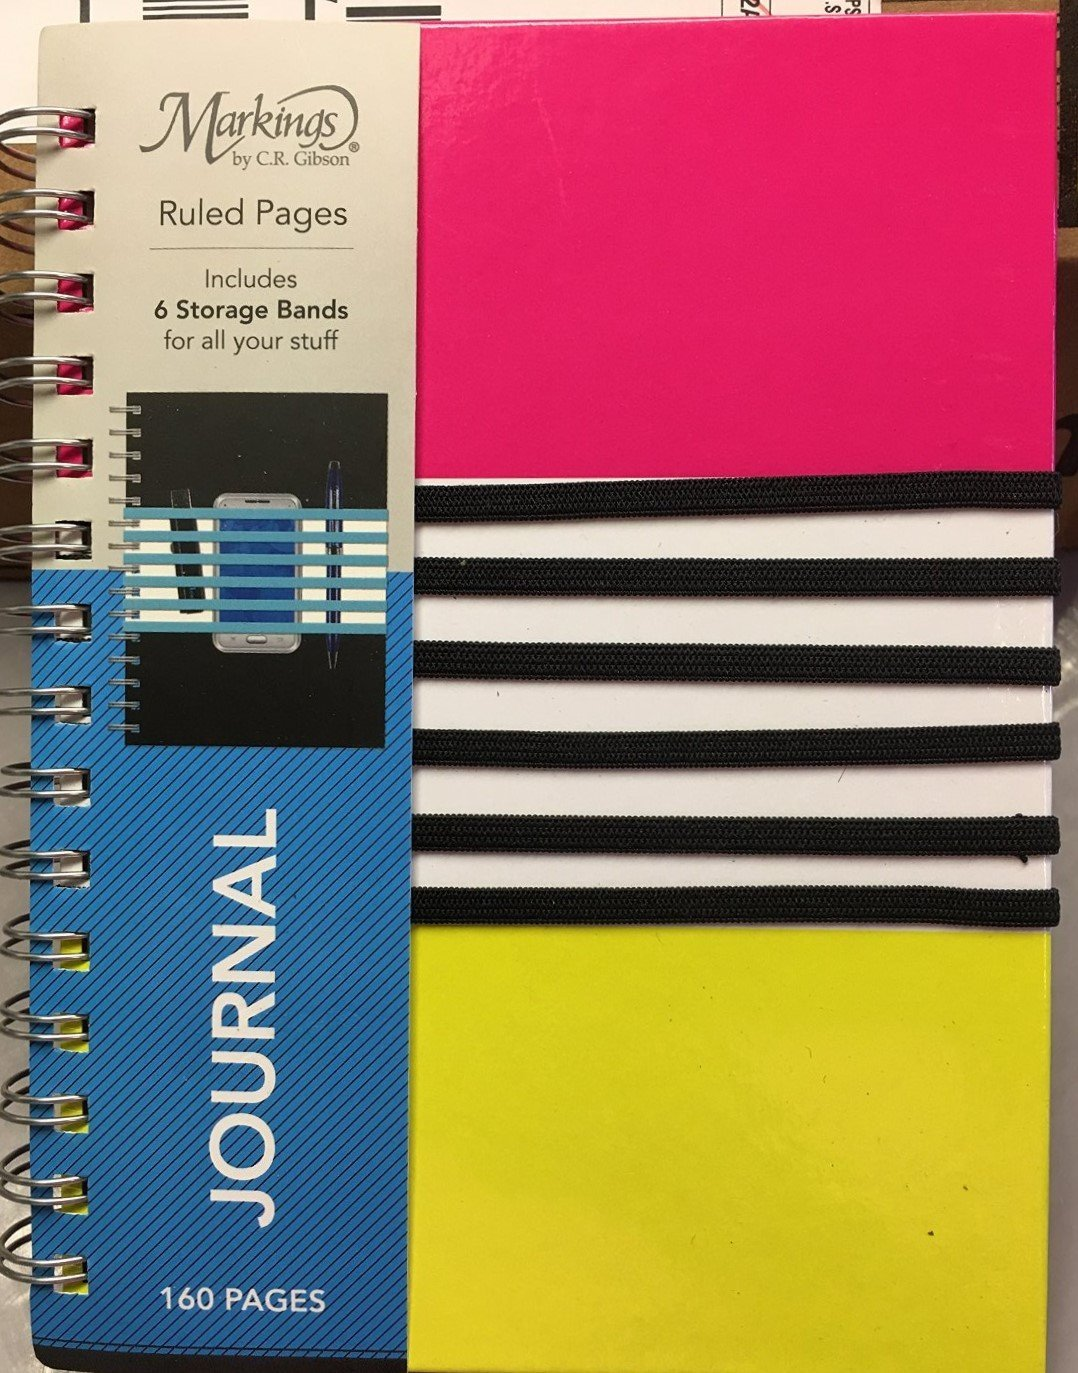 Markings Journal Notebook Pink Black 160 Ruled Pages Storage Bands